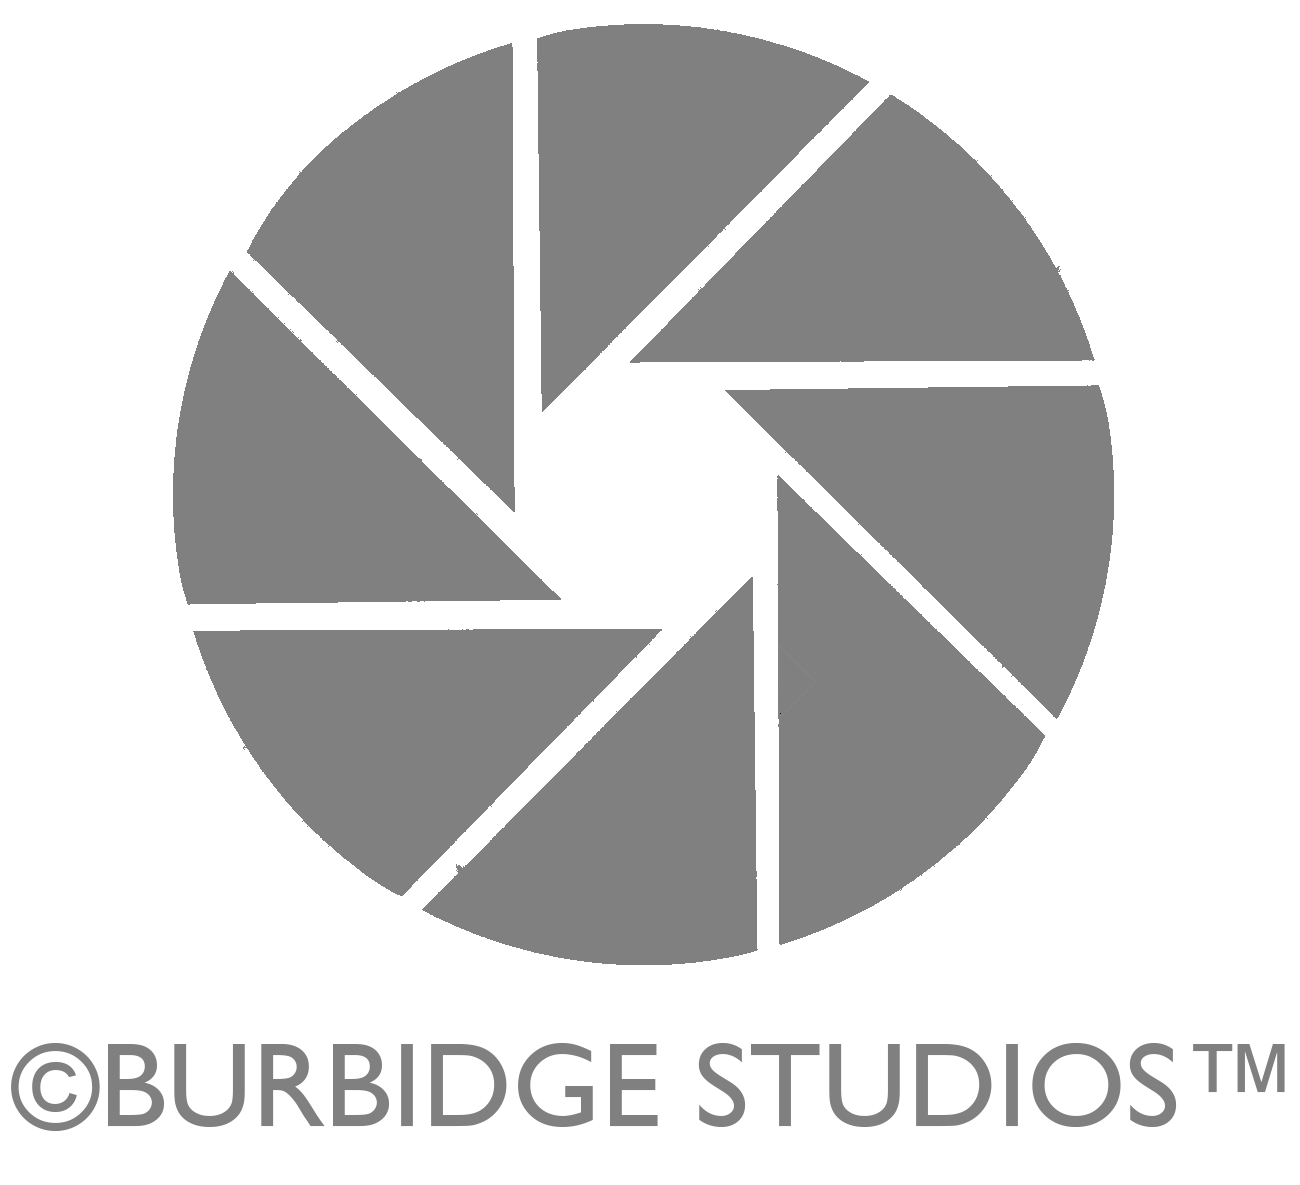 BURBIDGE STUDIOS